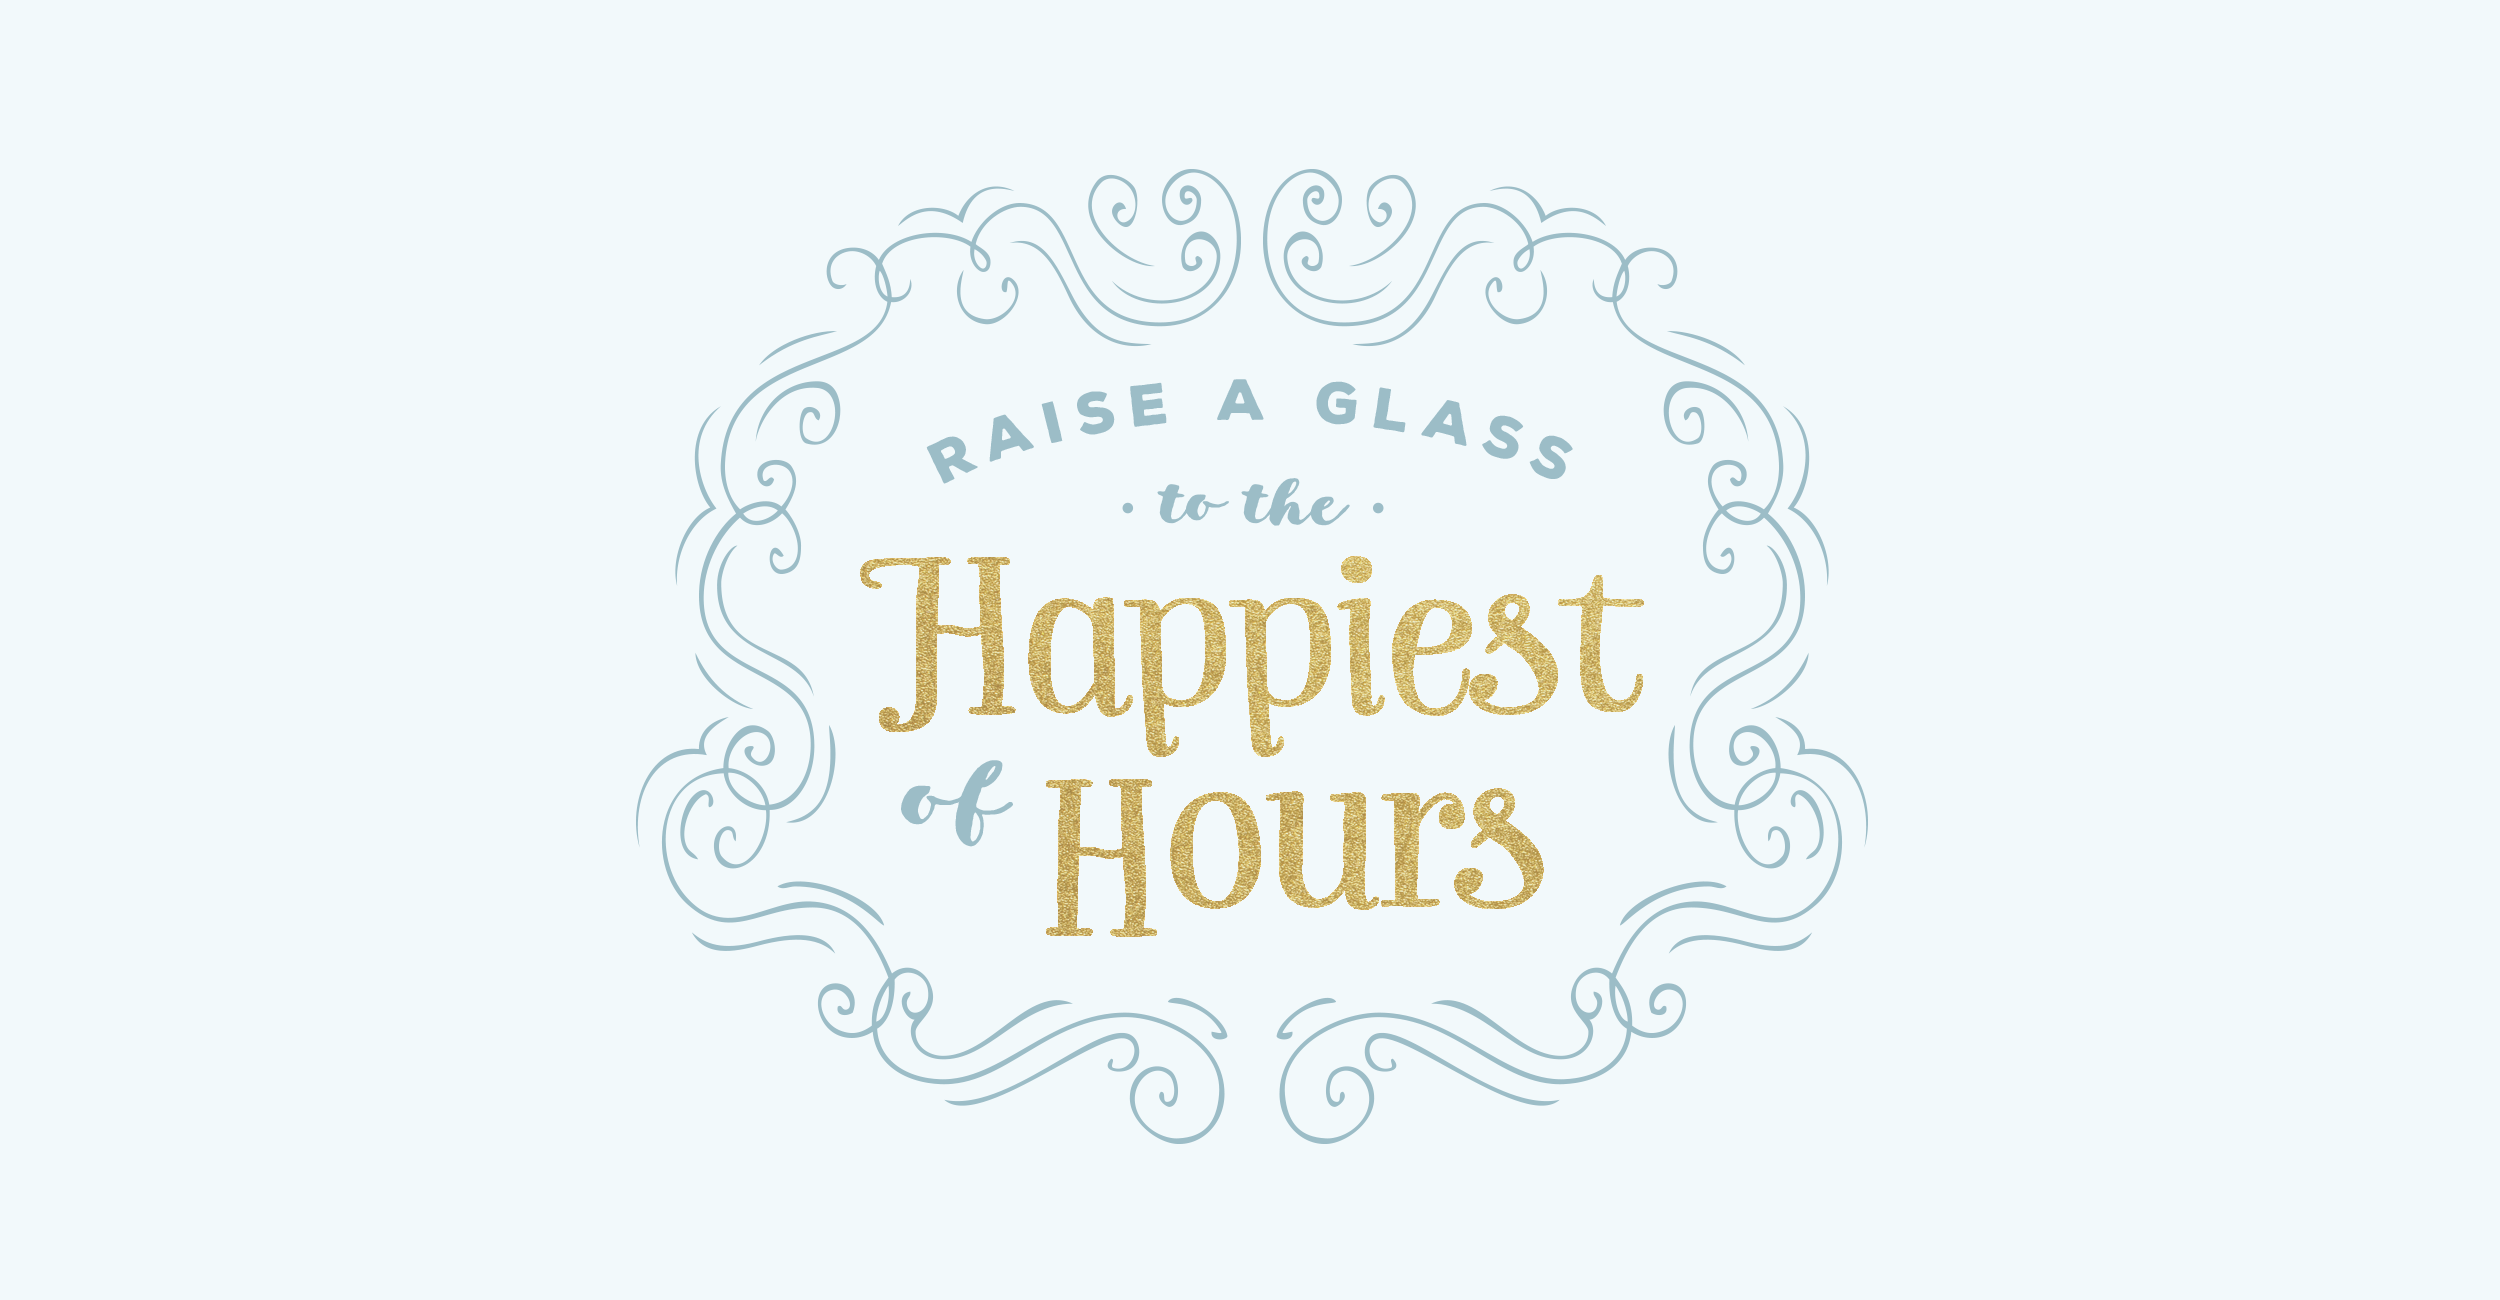 HappiestHours_logo.png